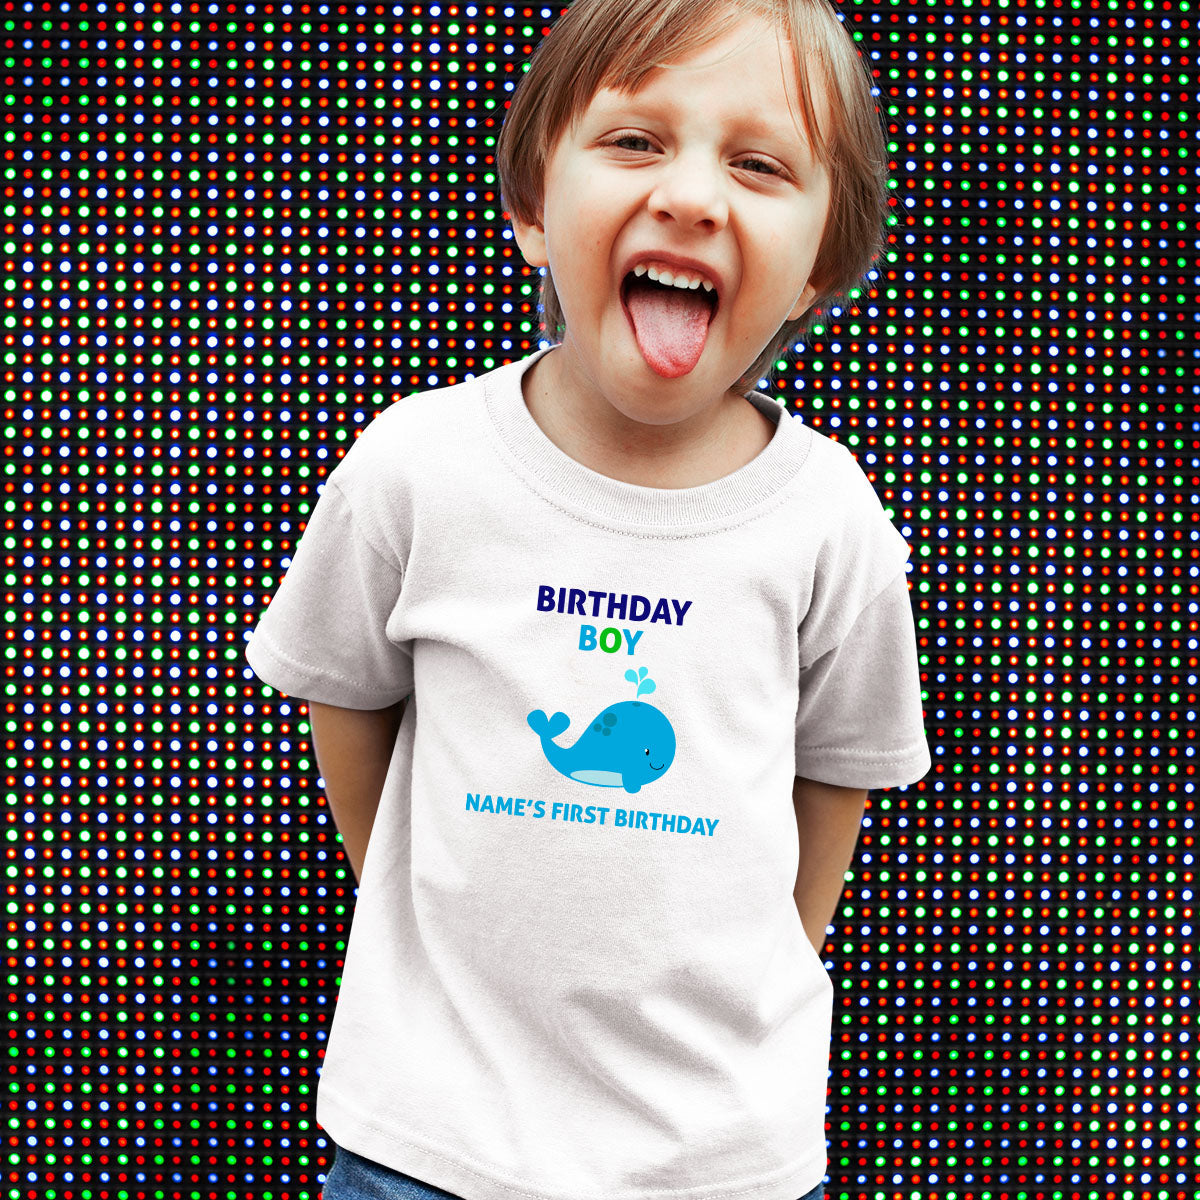 Sprinklecart Special Kids 1st Birthday Dress | Customized Name Printed Birthday Boy Tee Gift for Your Kid